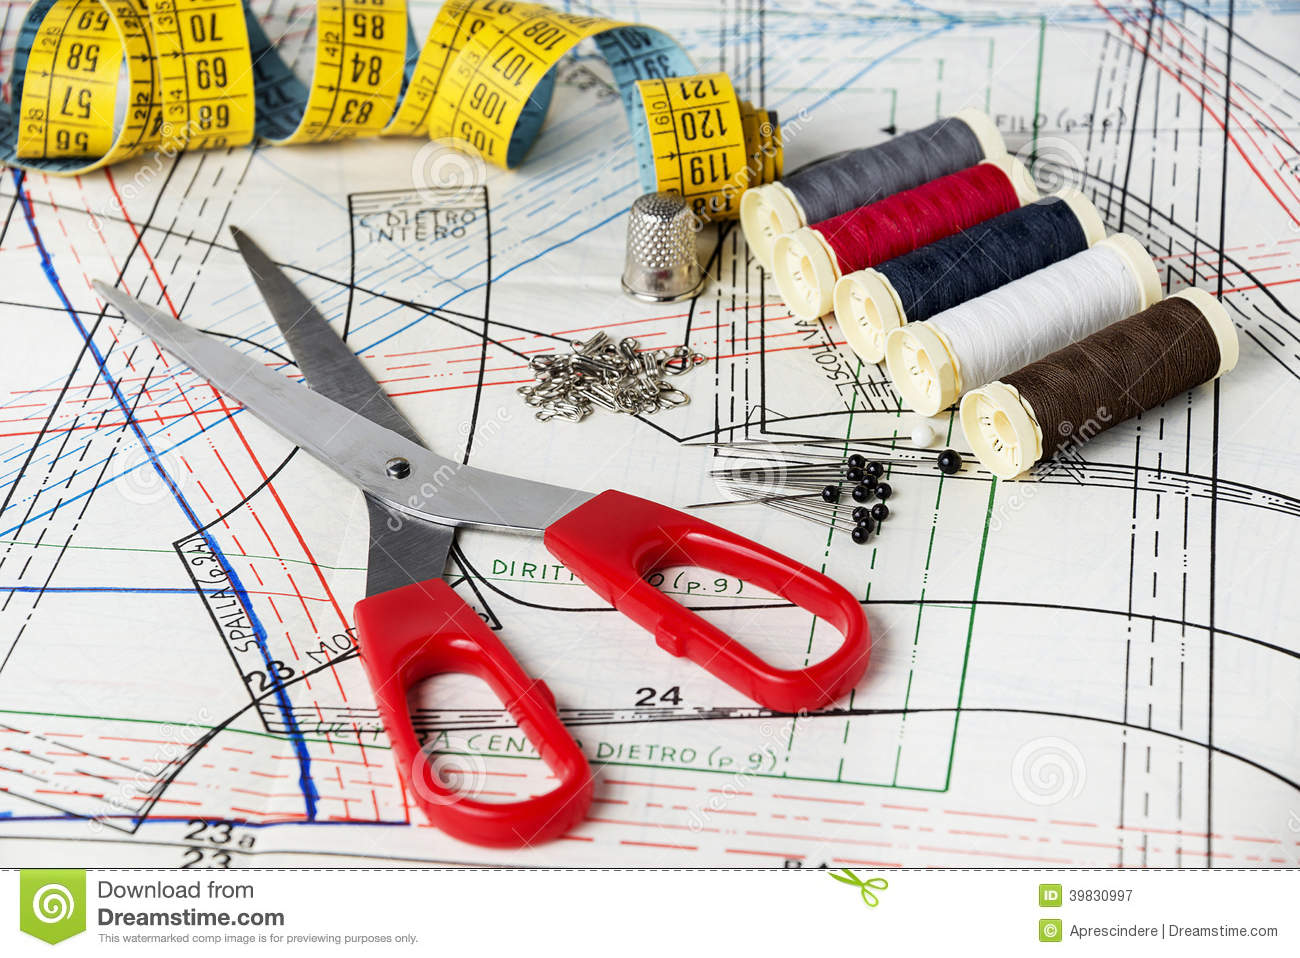 Sewing Kit Stock Image Of Fabric Colors Embroidery 39830997 Schematic Maker Jam And Jelly Diagram In